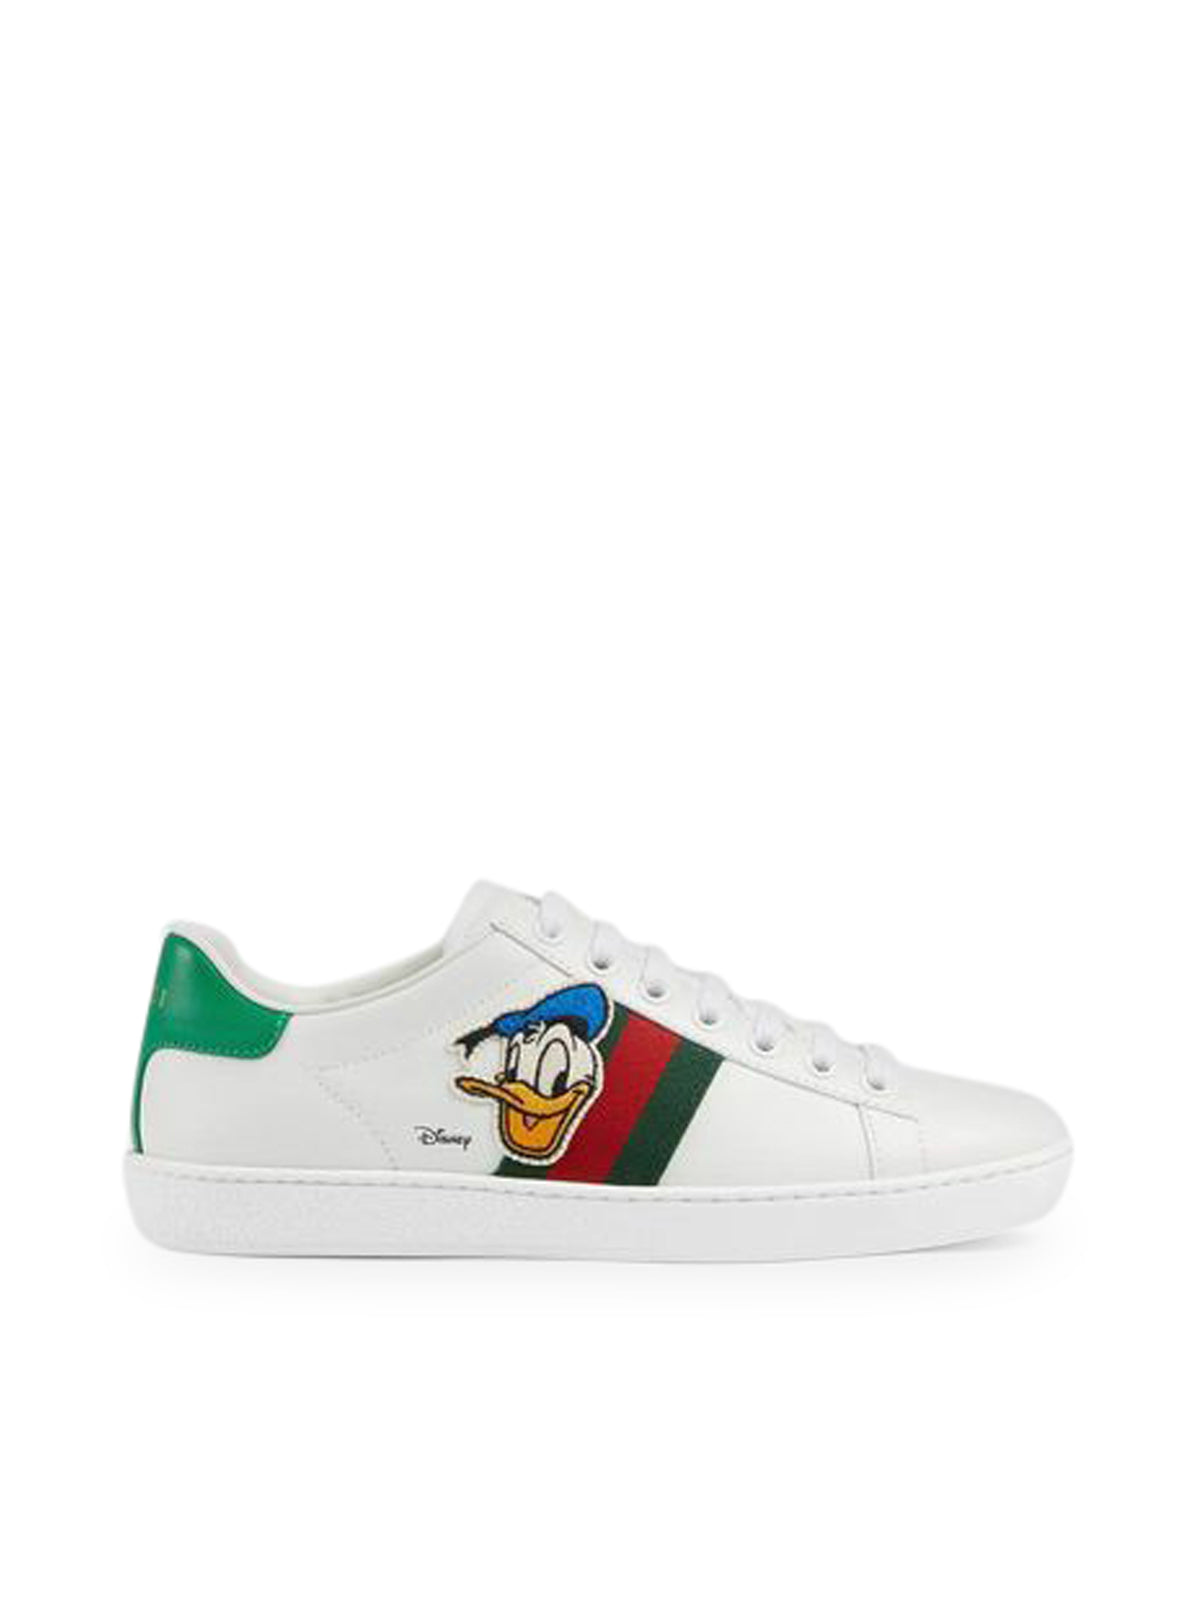 x Disney ace sneakers